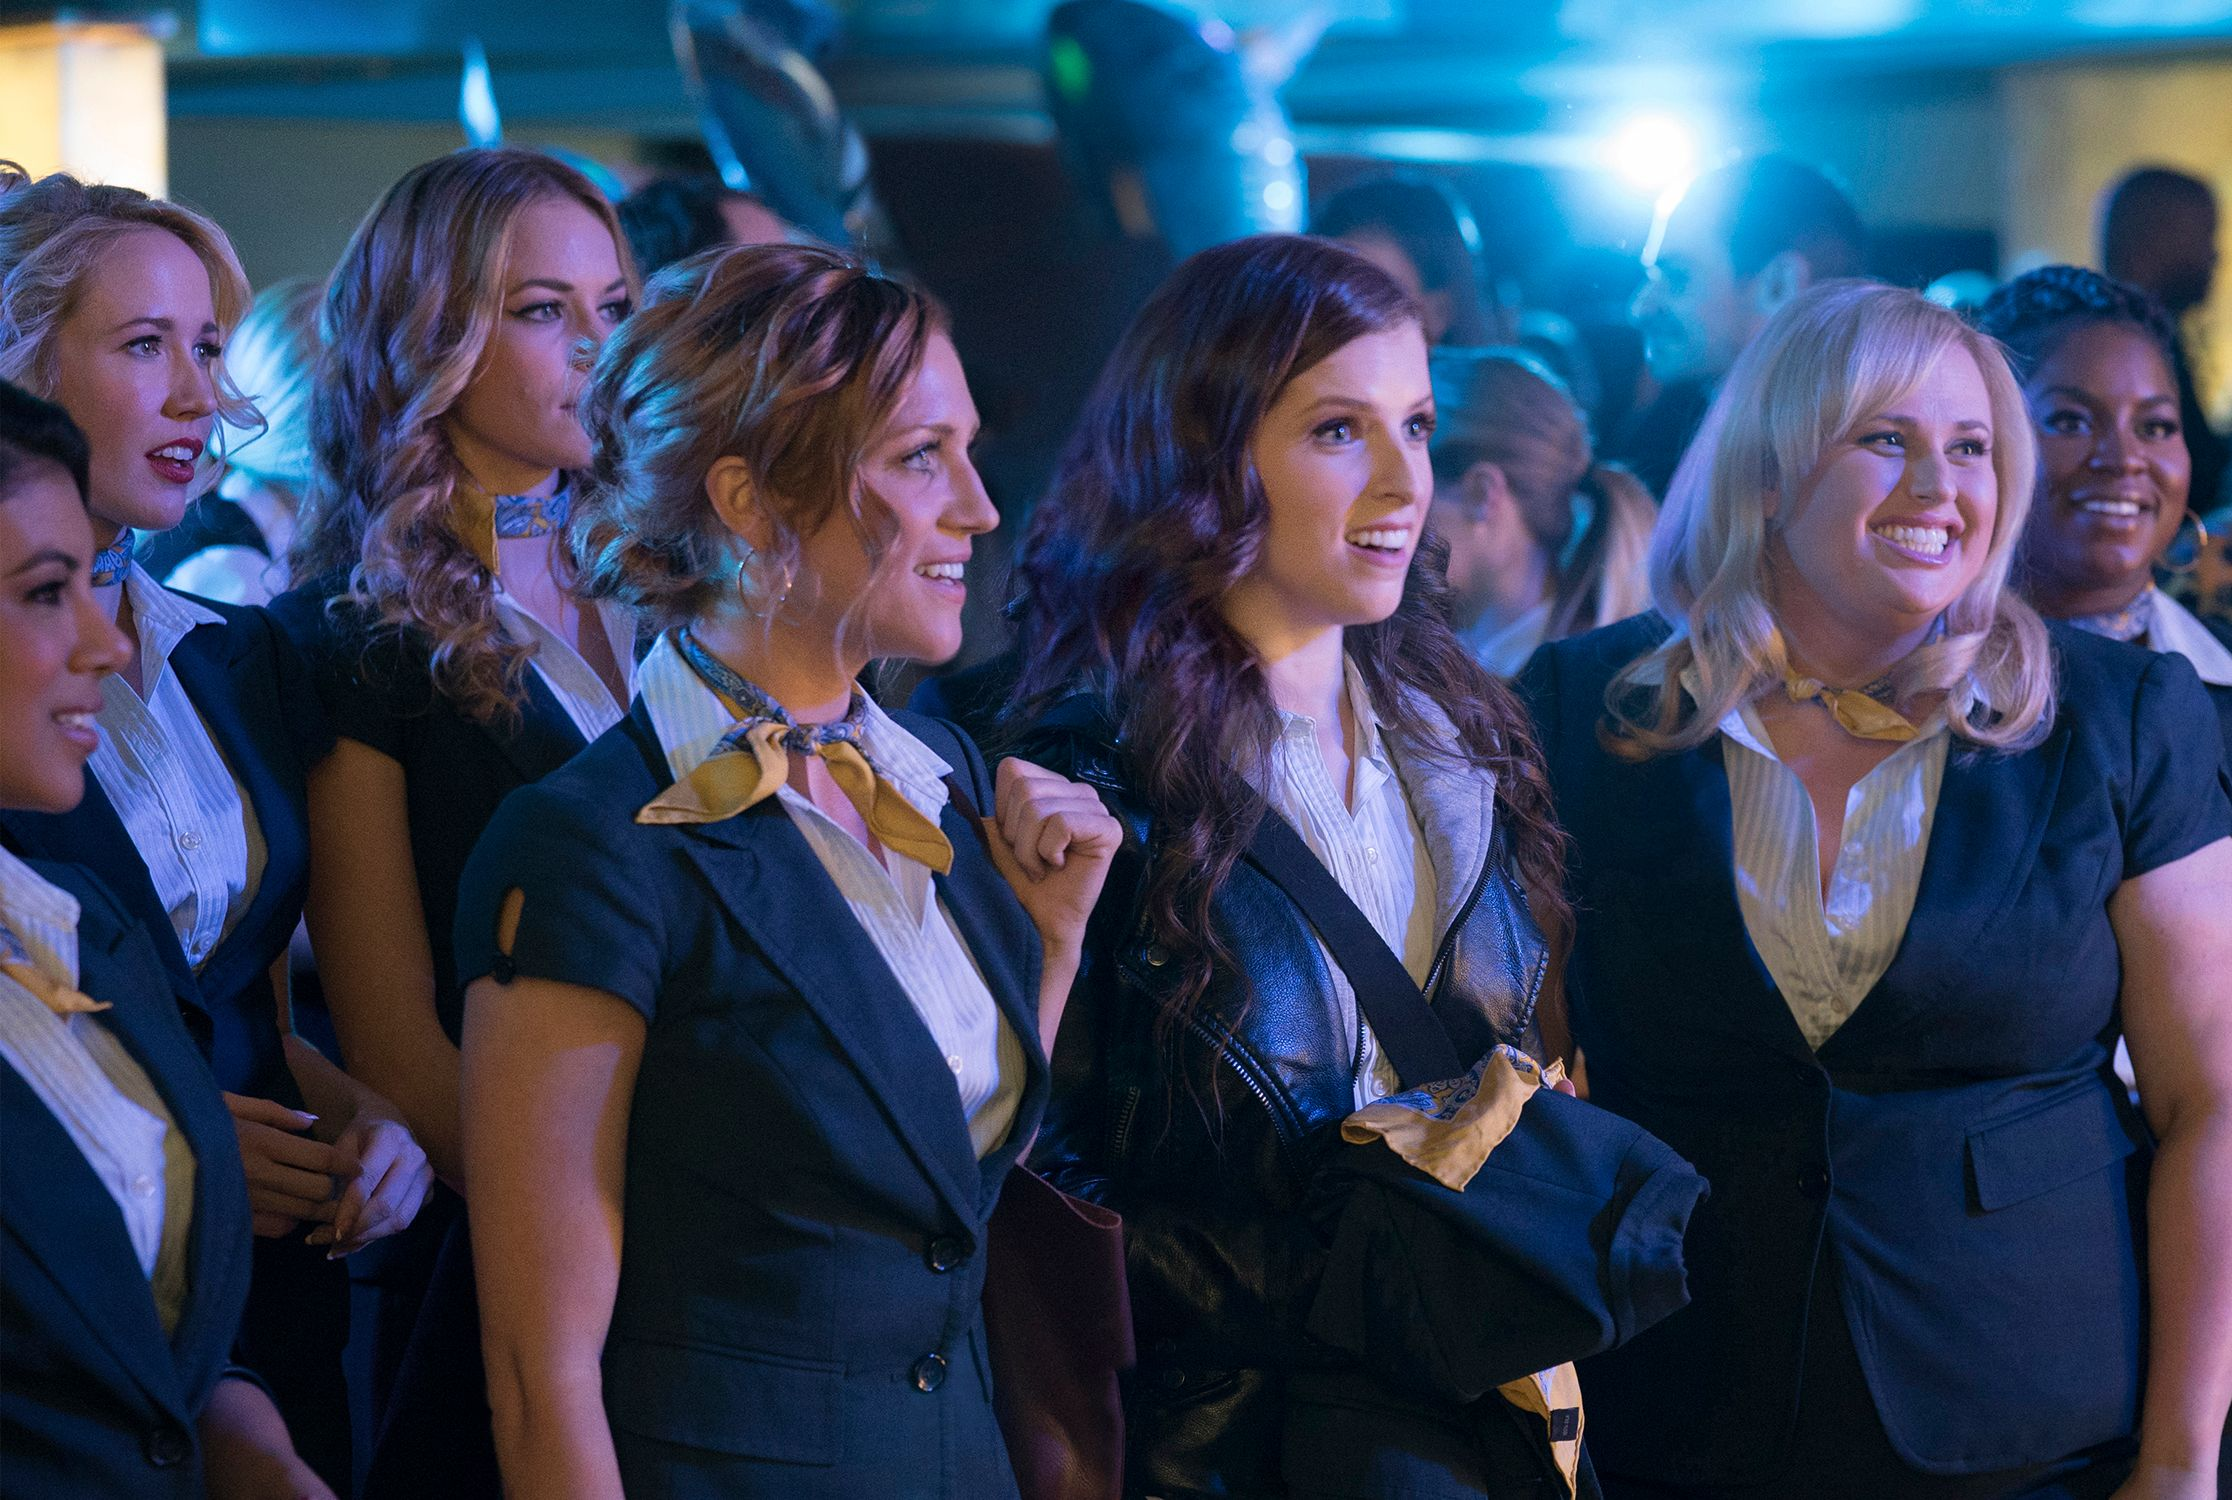 Pitch Perfect 3 stars faked smiles for 'emotional' final scenes together